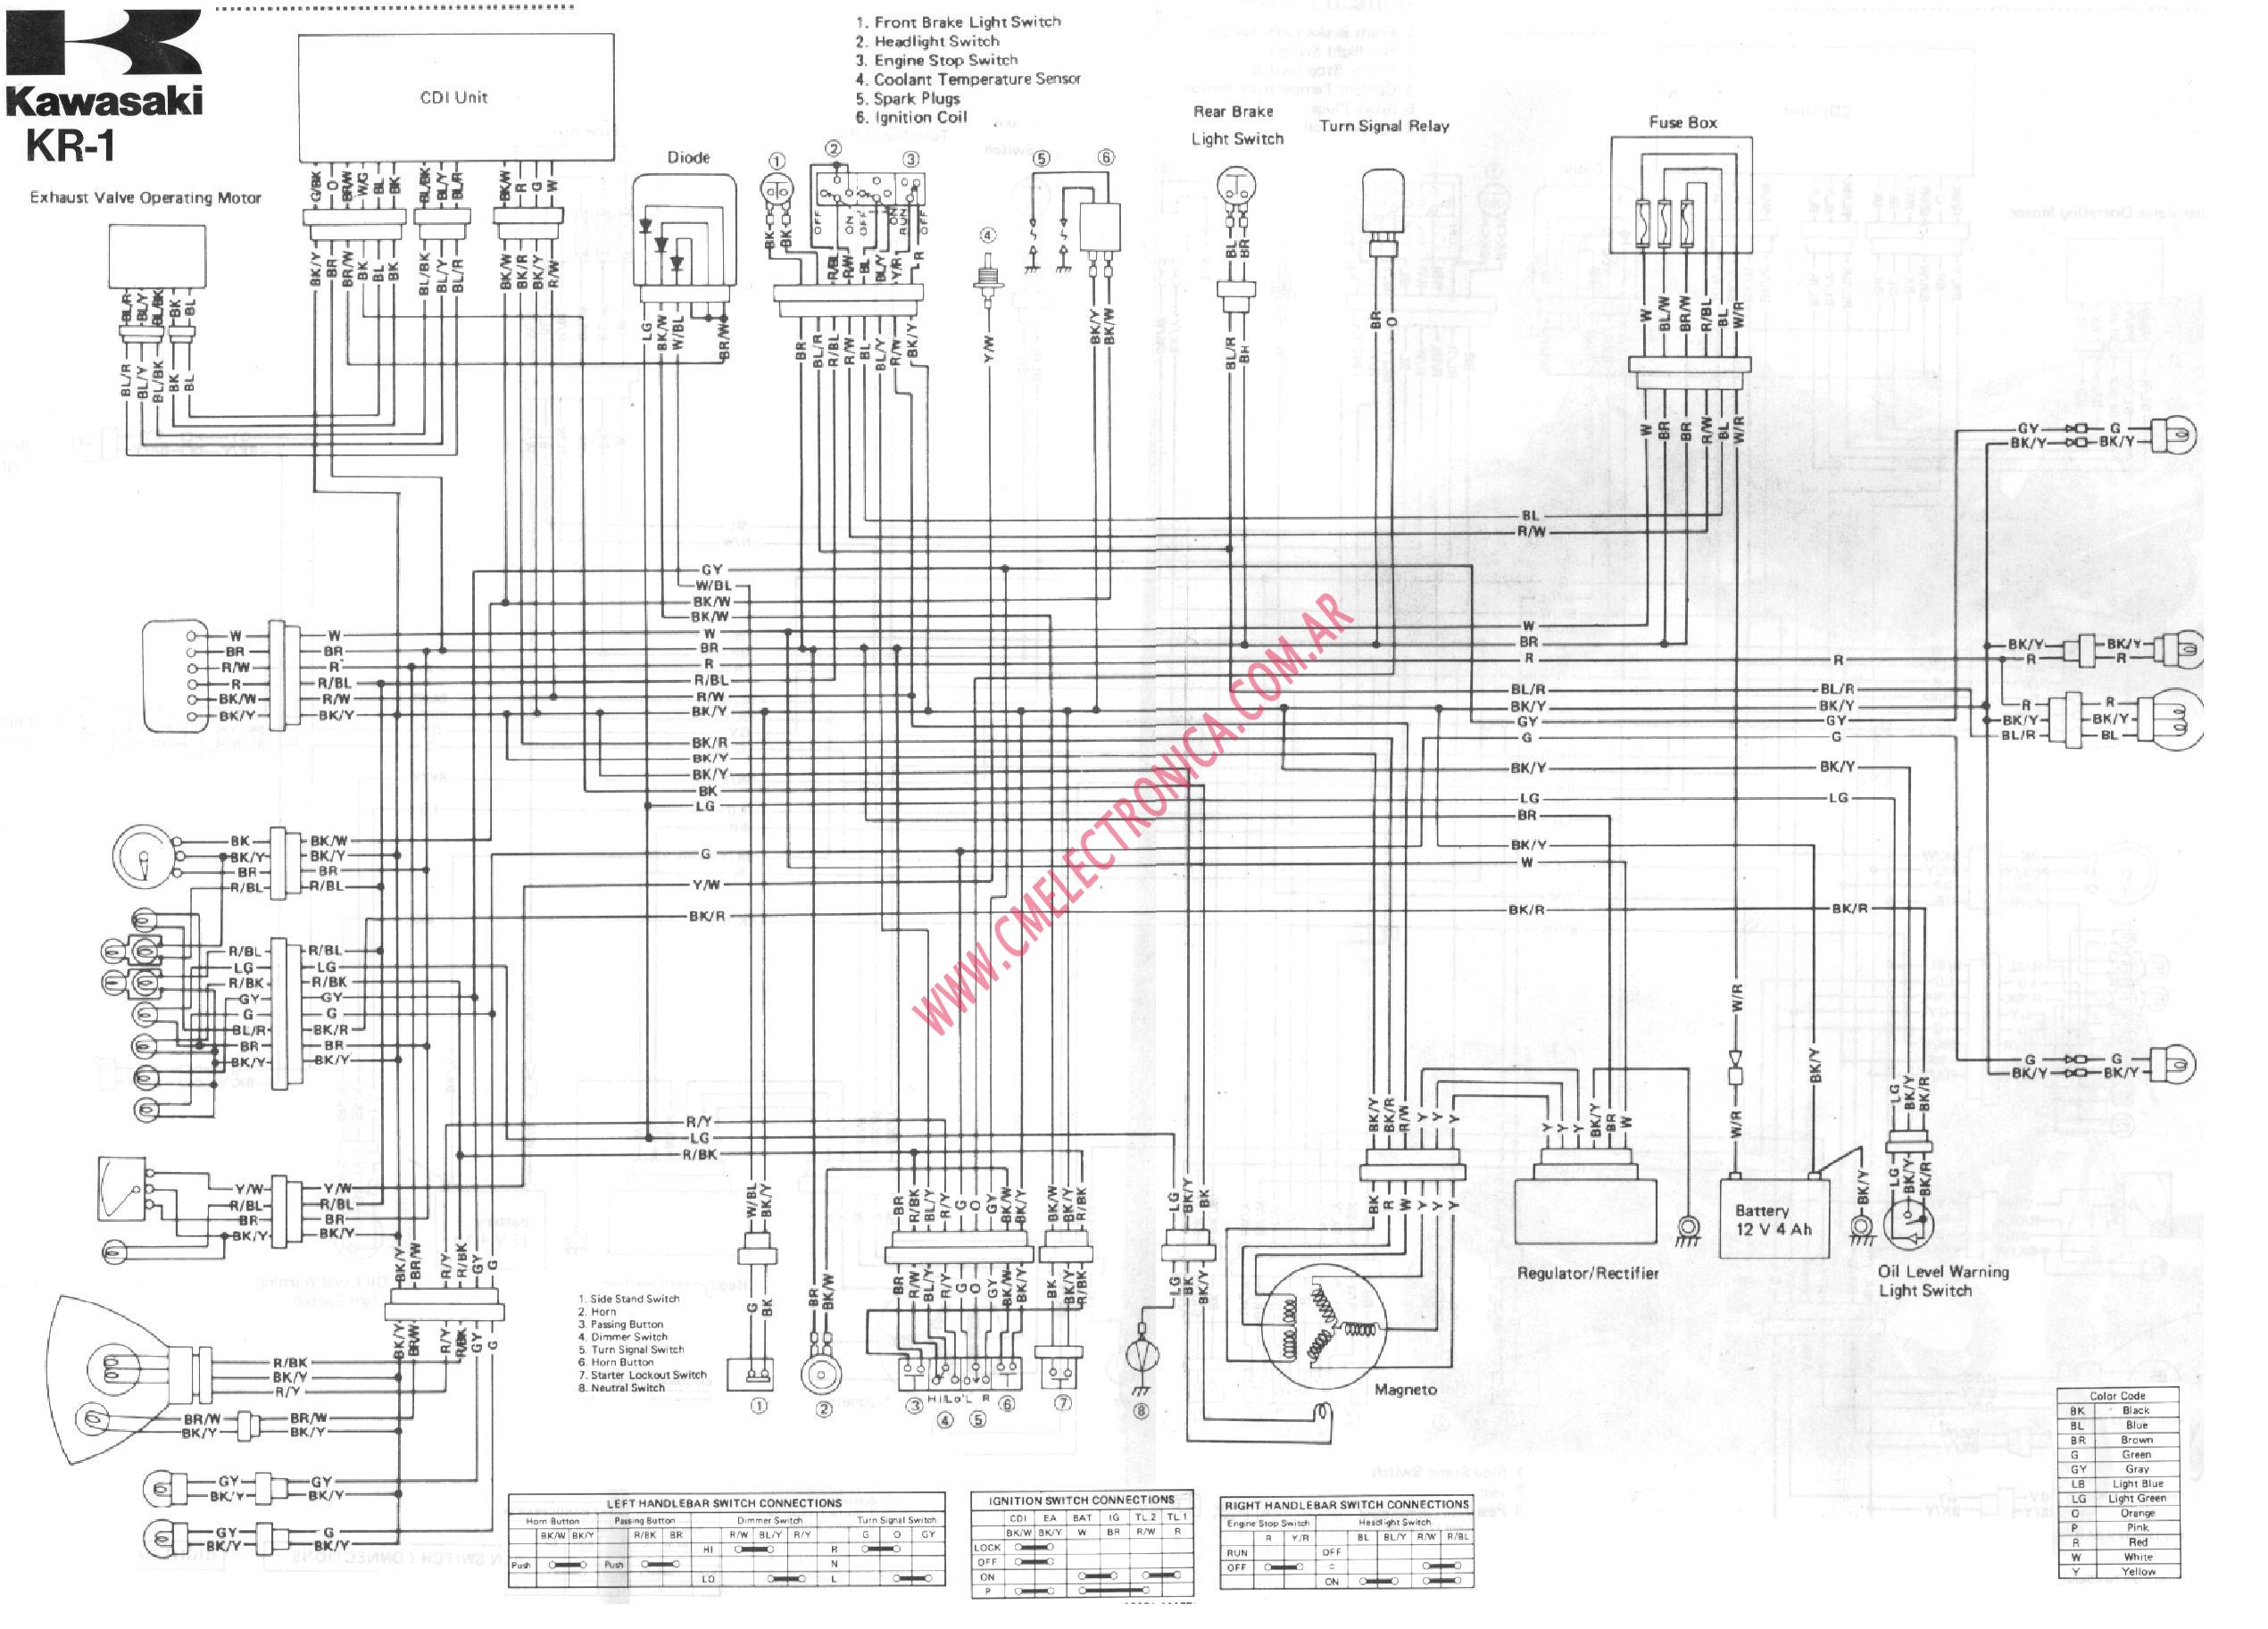 1986 Kawasaki Bayou 300 Ignition Wiring Diagram Resources Honda 125 For1987 Cdi Box Atv 650 Get Free Image About